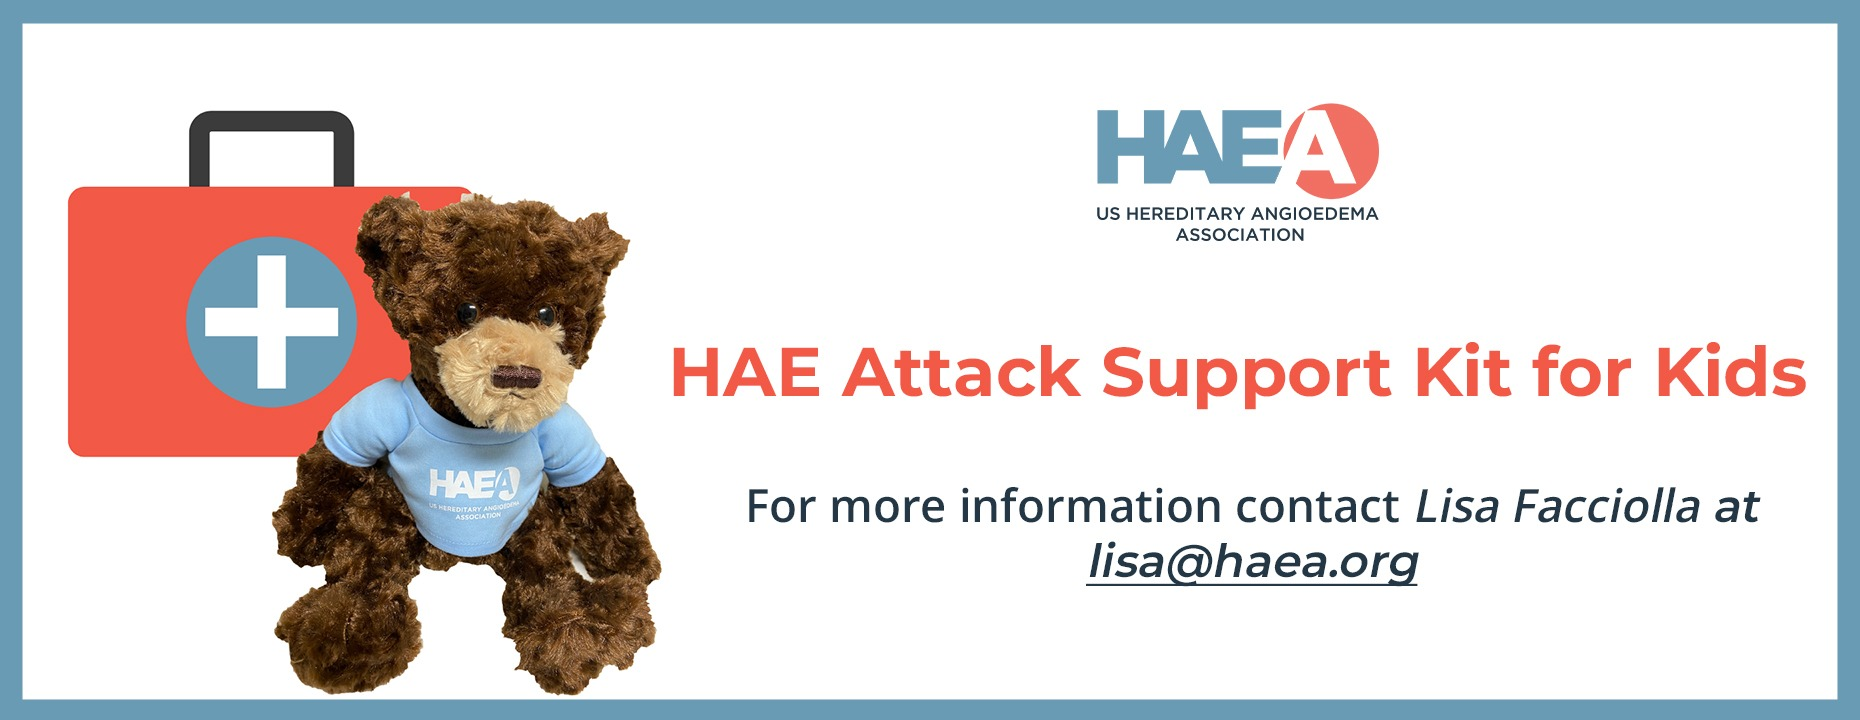 HAE Attack Support Kit for Kids